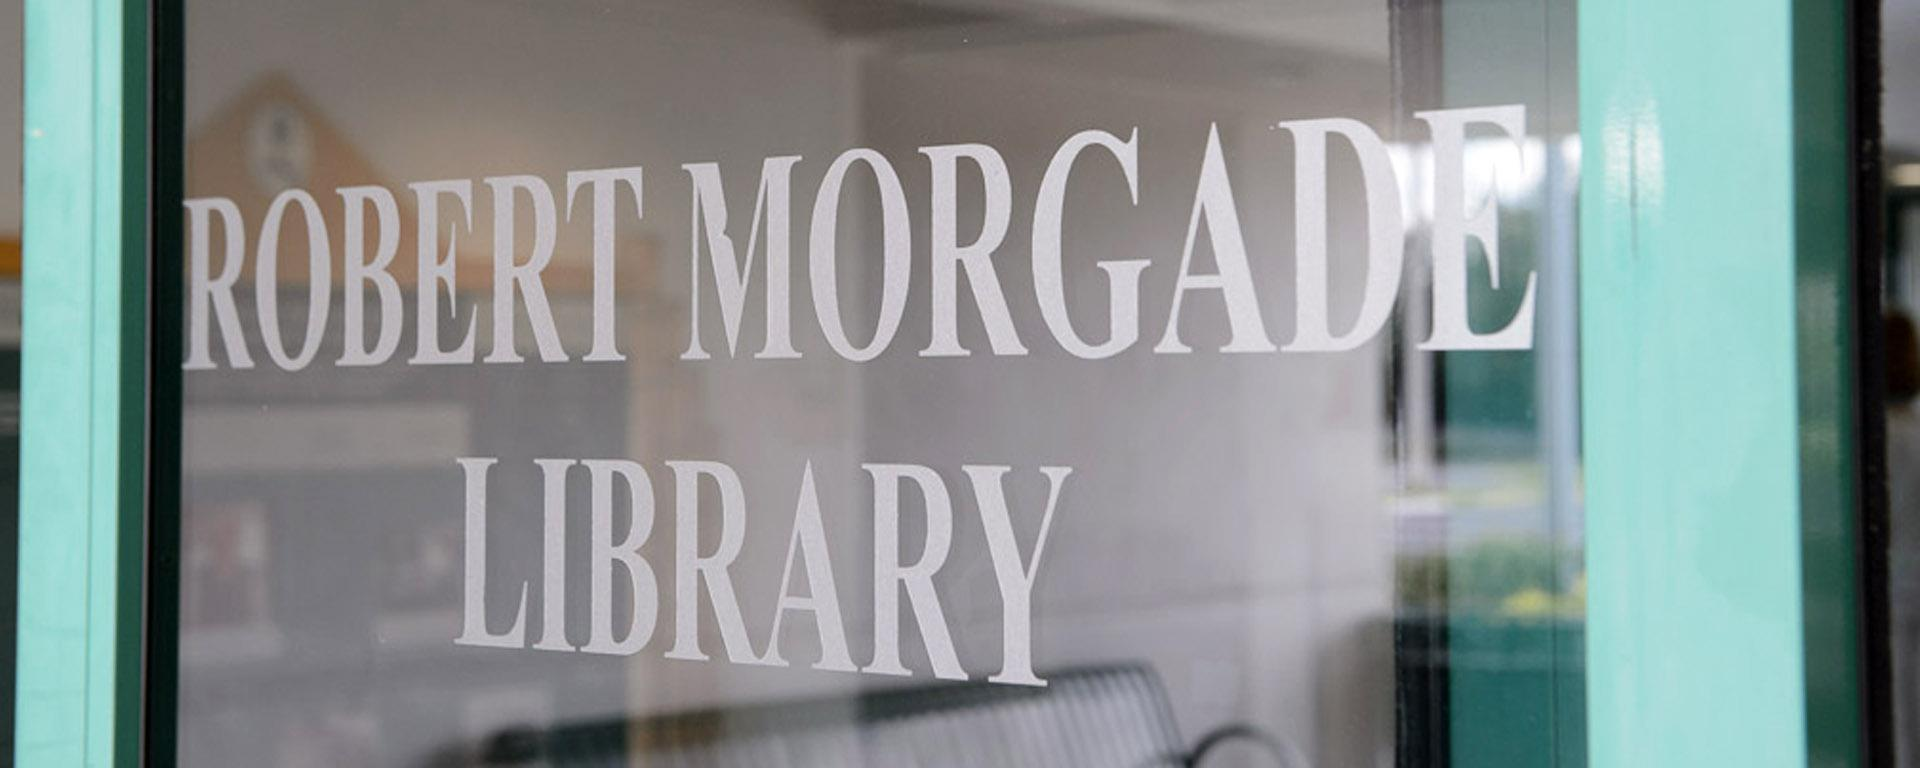 picture of the library's name on a glass door